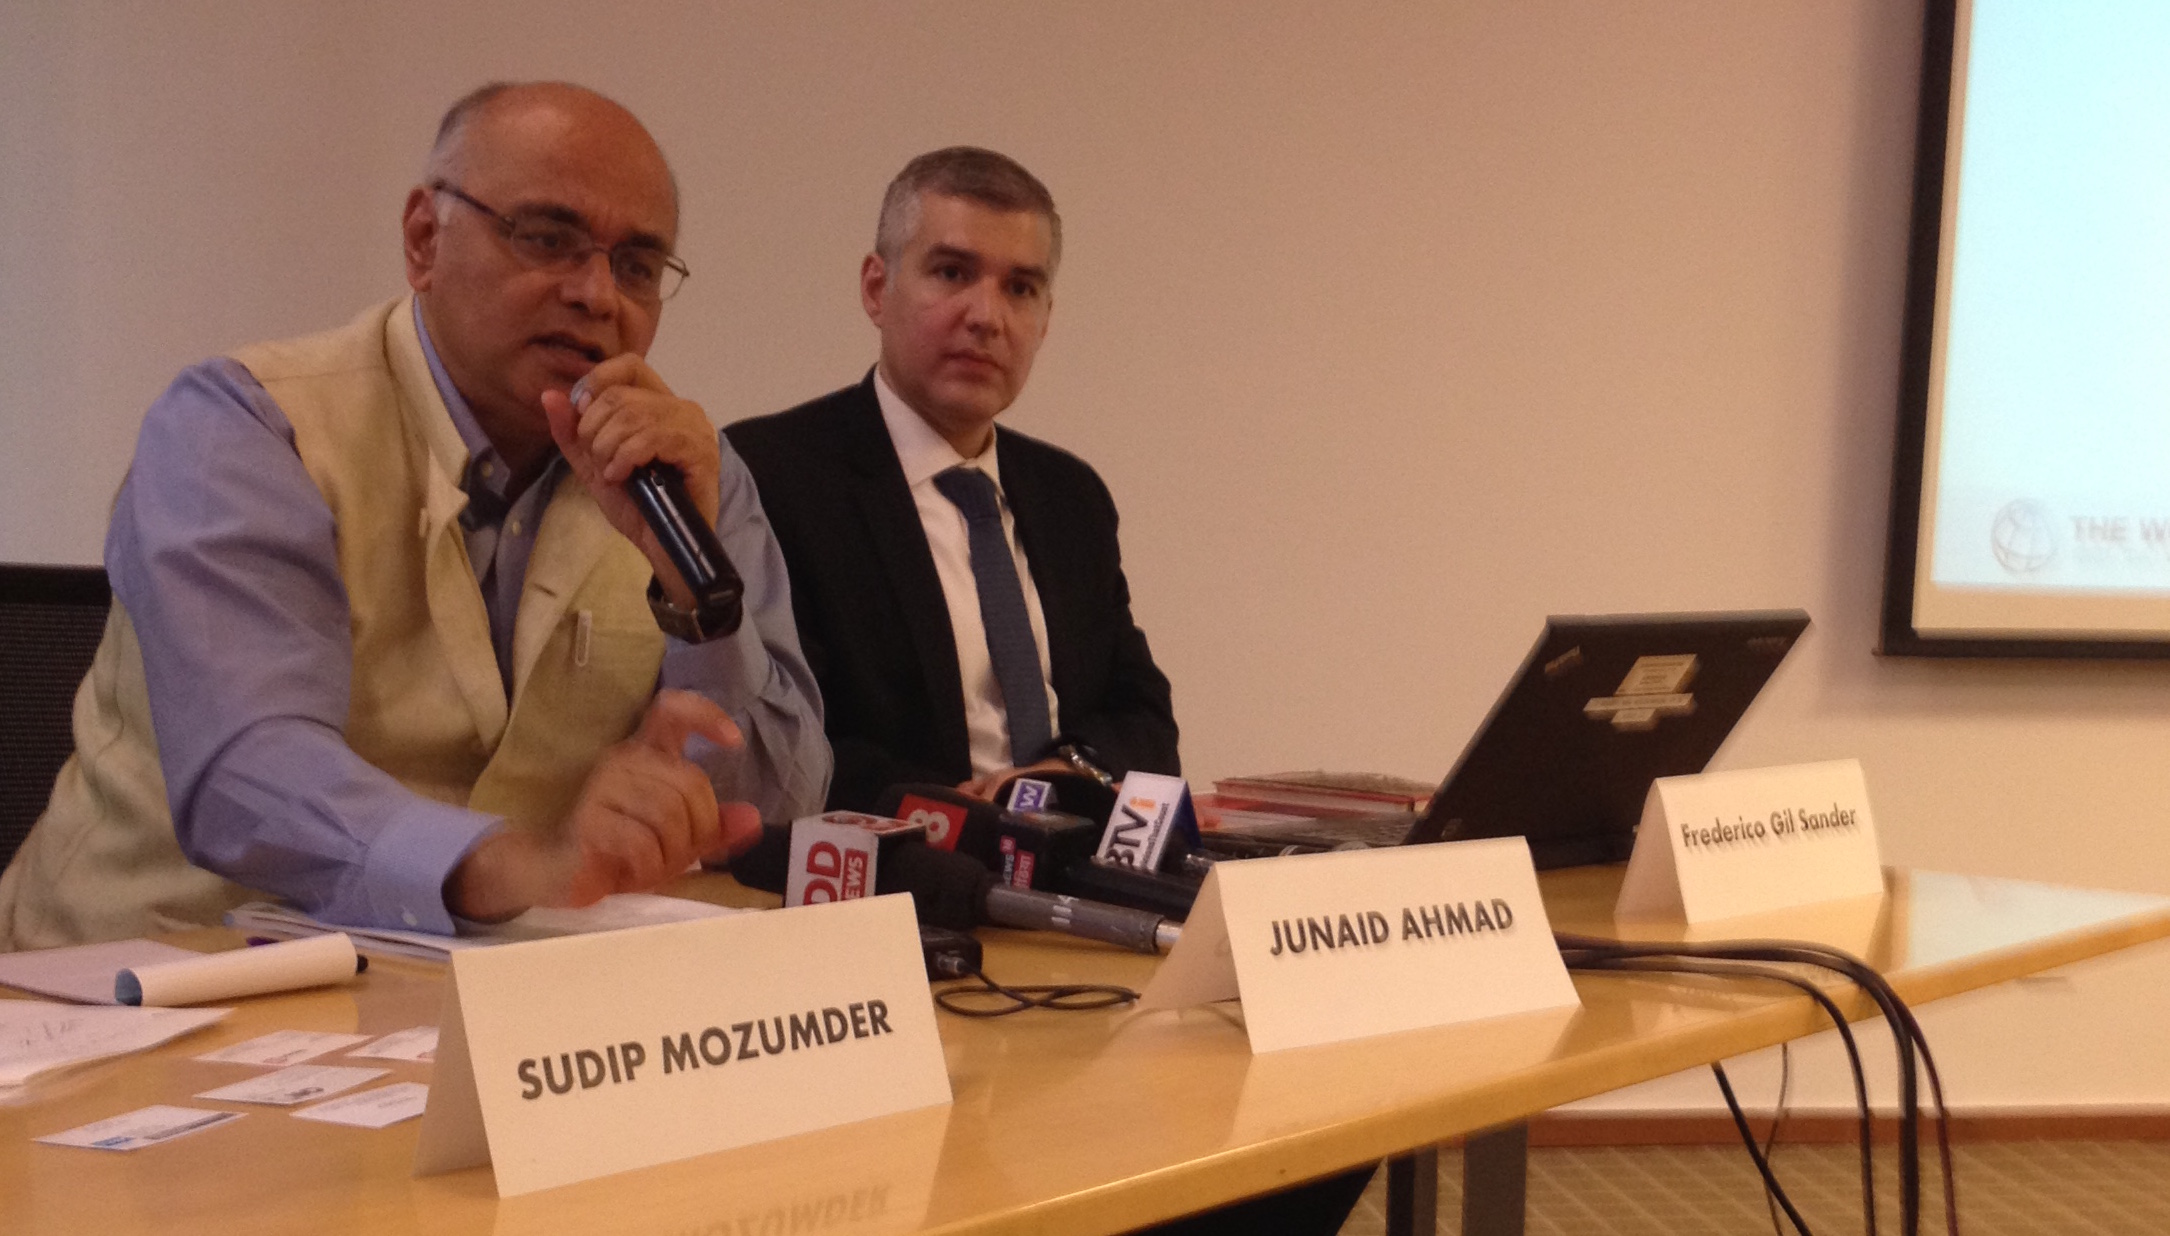 World Bank Country Director in India Junaid Ahmad (left) and chief economist Frederico Gil Sander said India needs to reverse the declining number of women at the workplace as they released a recent study in New Delhi.